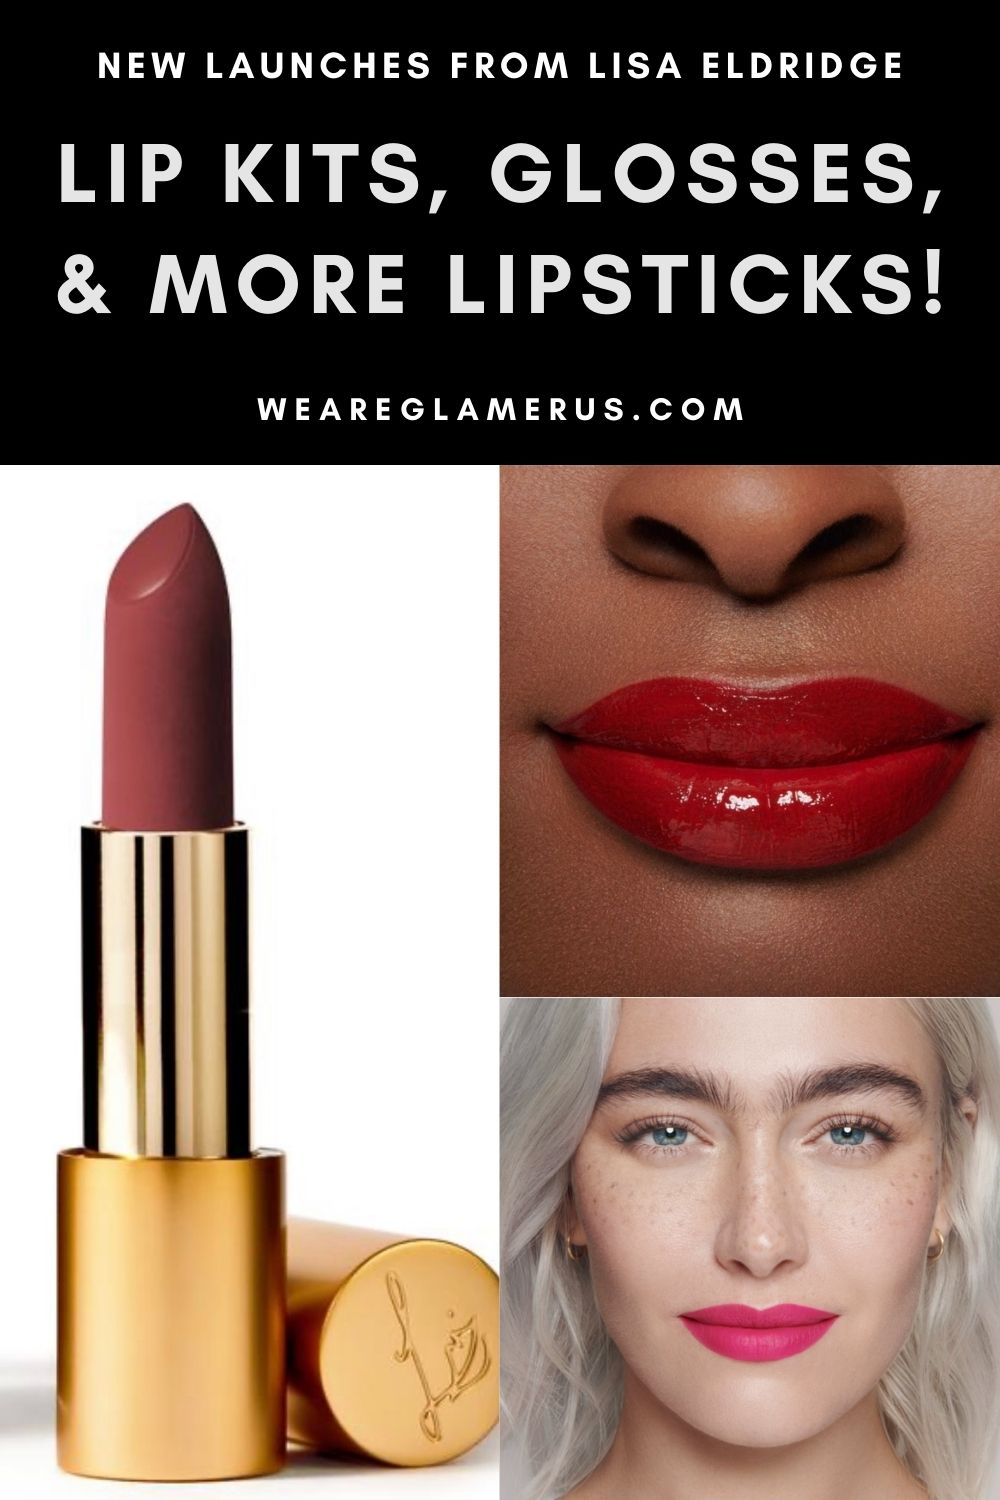 MUA extraordinaire and entrepreneur Lisa Eldridge has launched her new October collection, complete with 4 new shades of her coveted True Velvet Lipsticks, lip kits complete with her first lip liner formula, and a brand-new lip gloss!